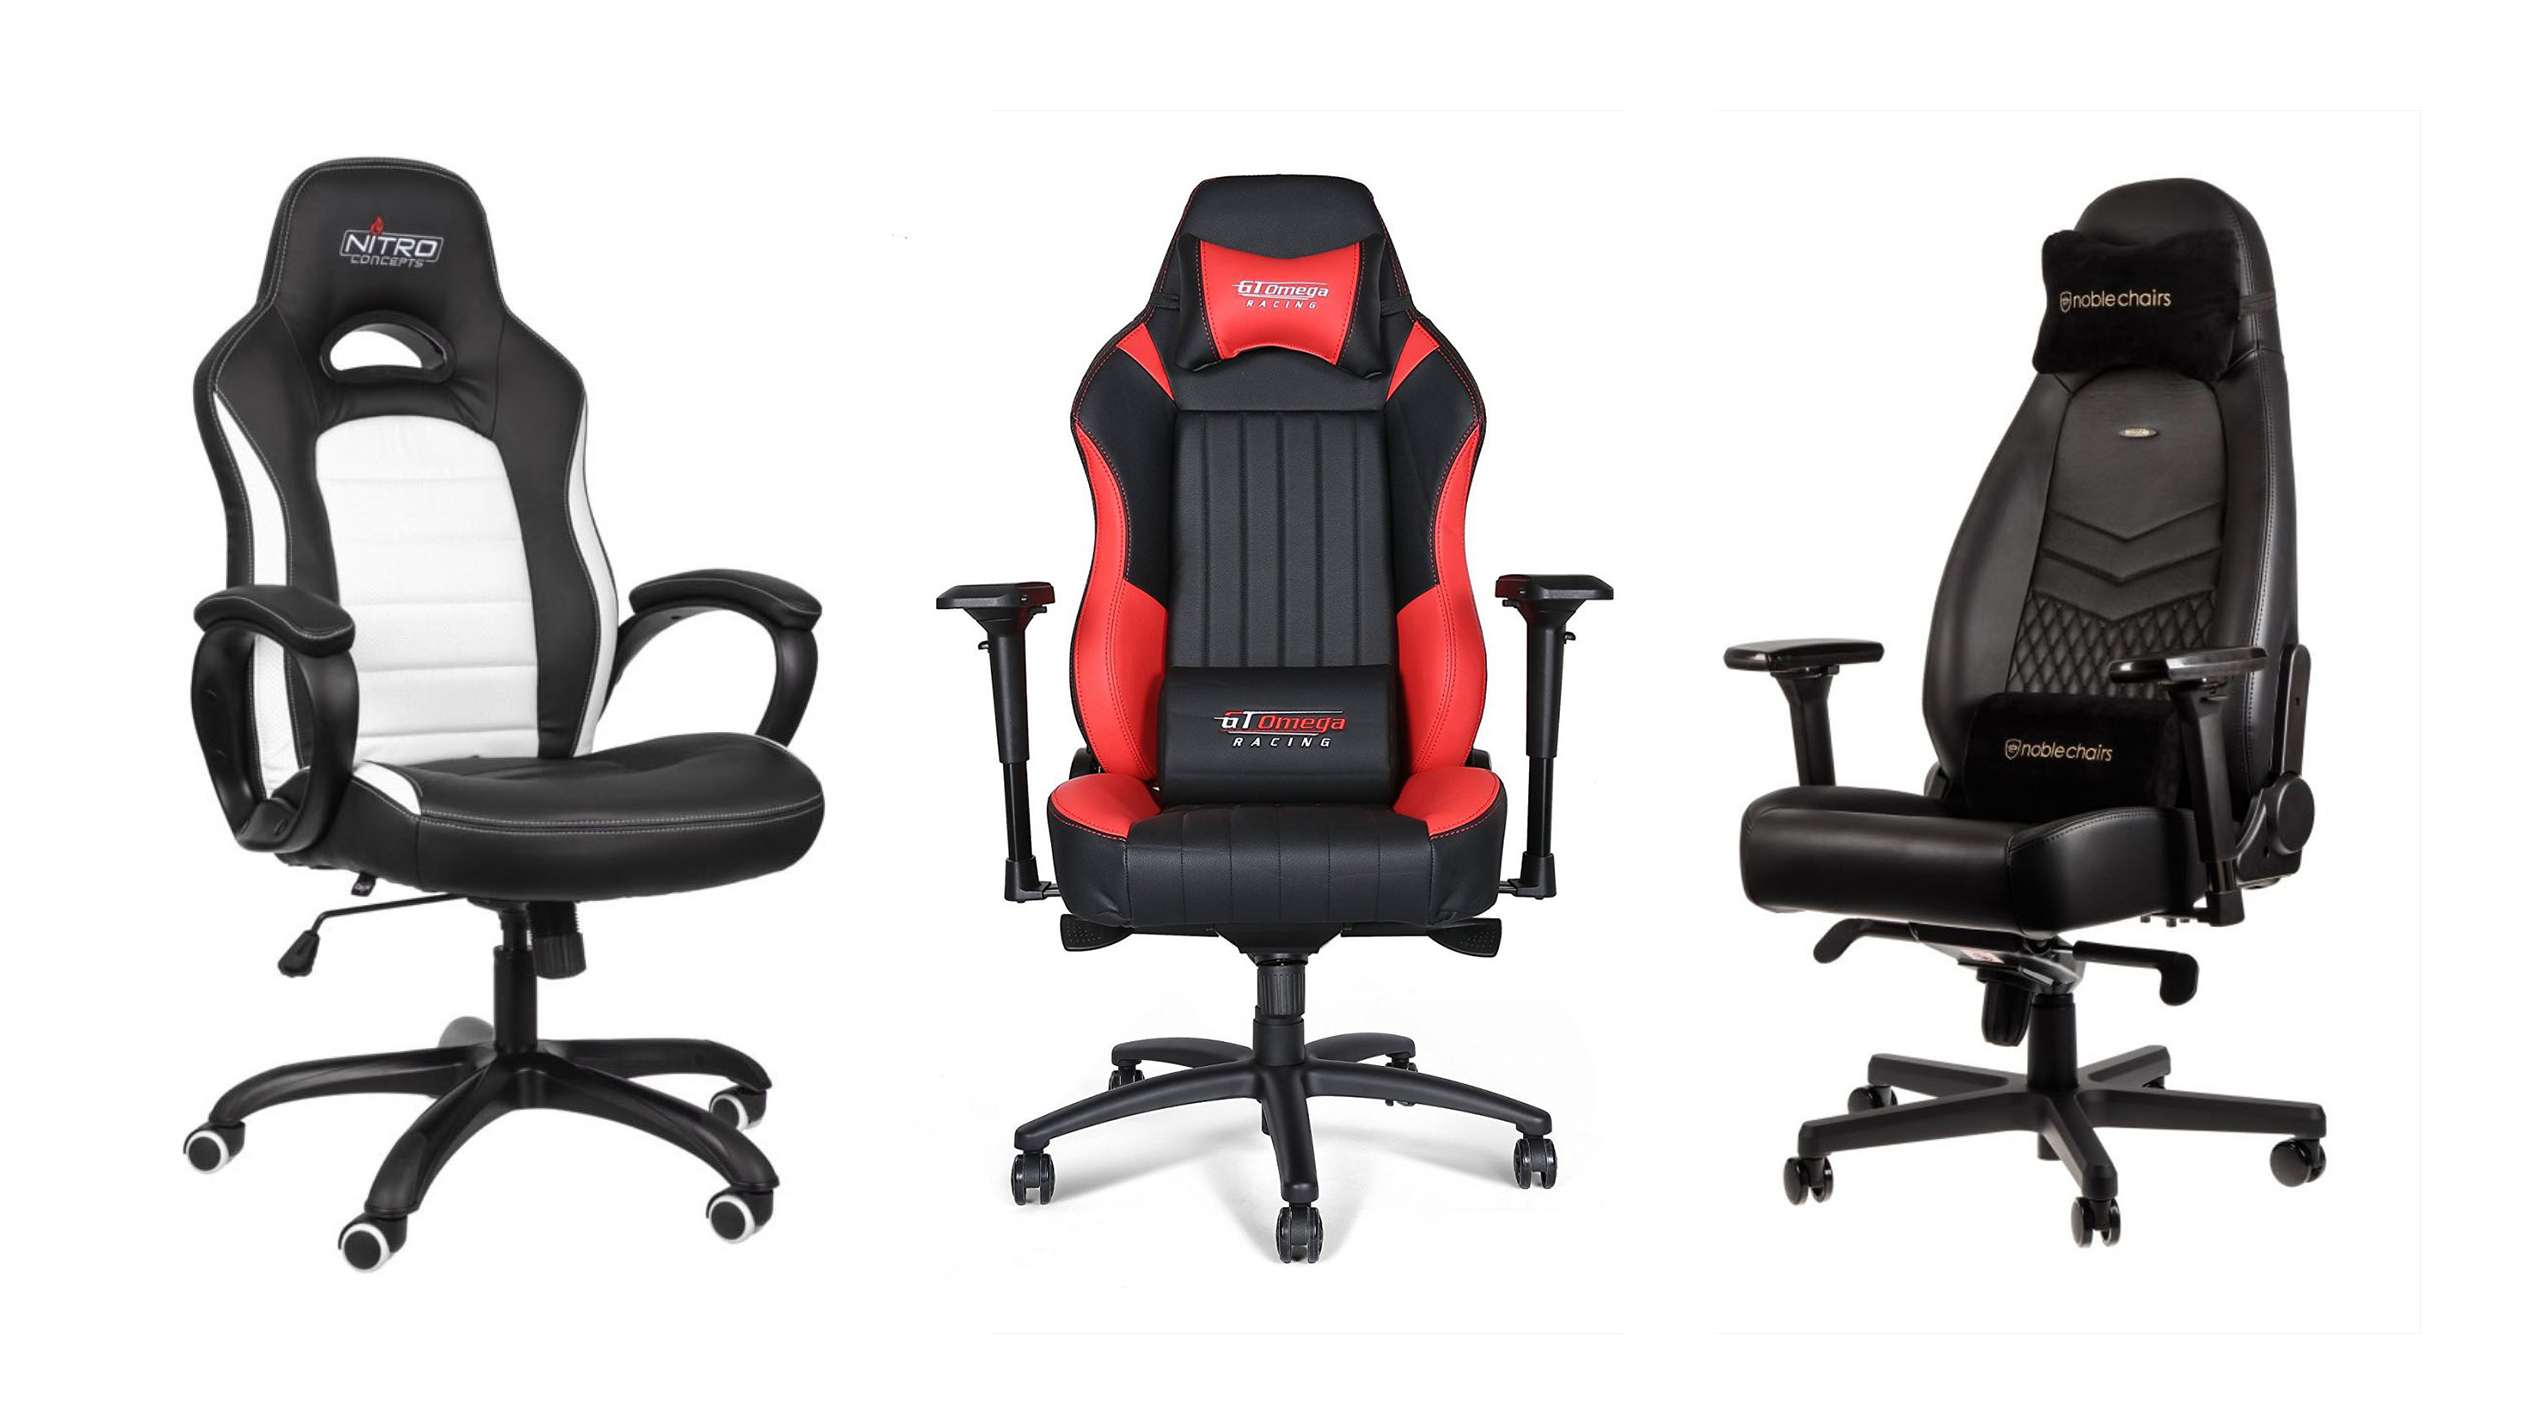 The best gaming chairs 2018 no PC gaming setup is plete without